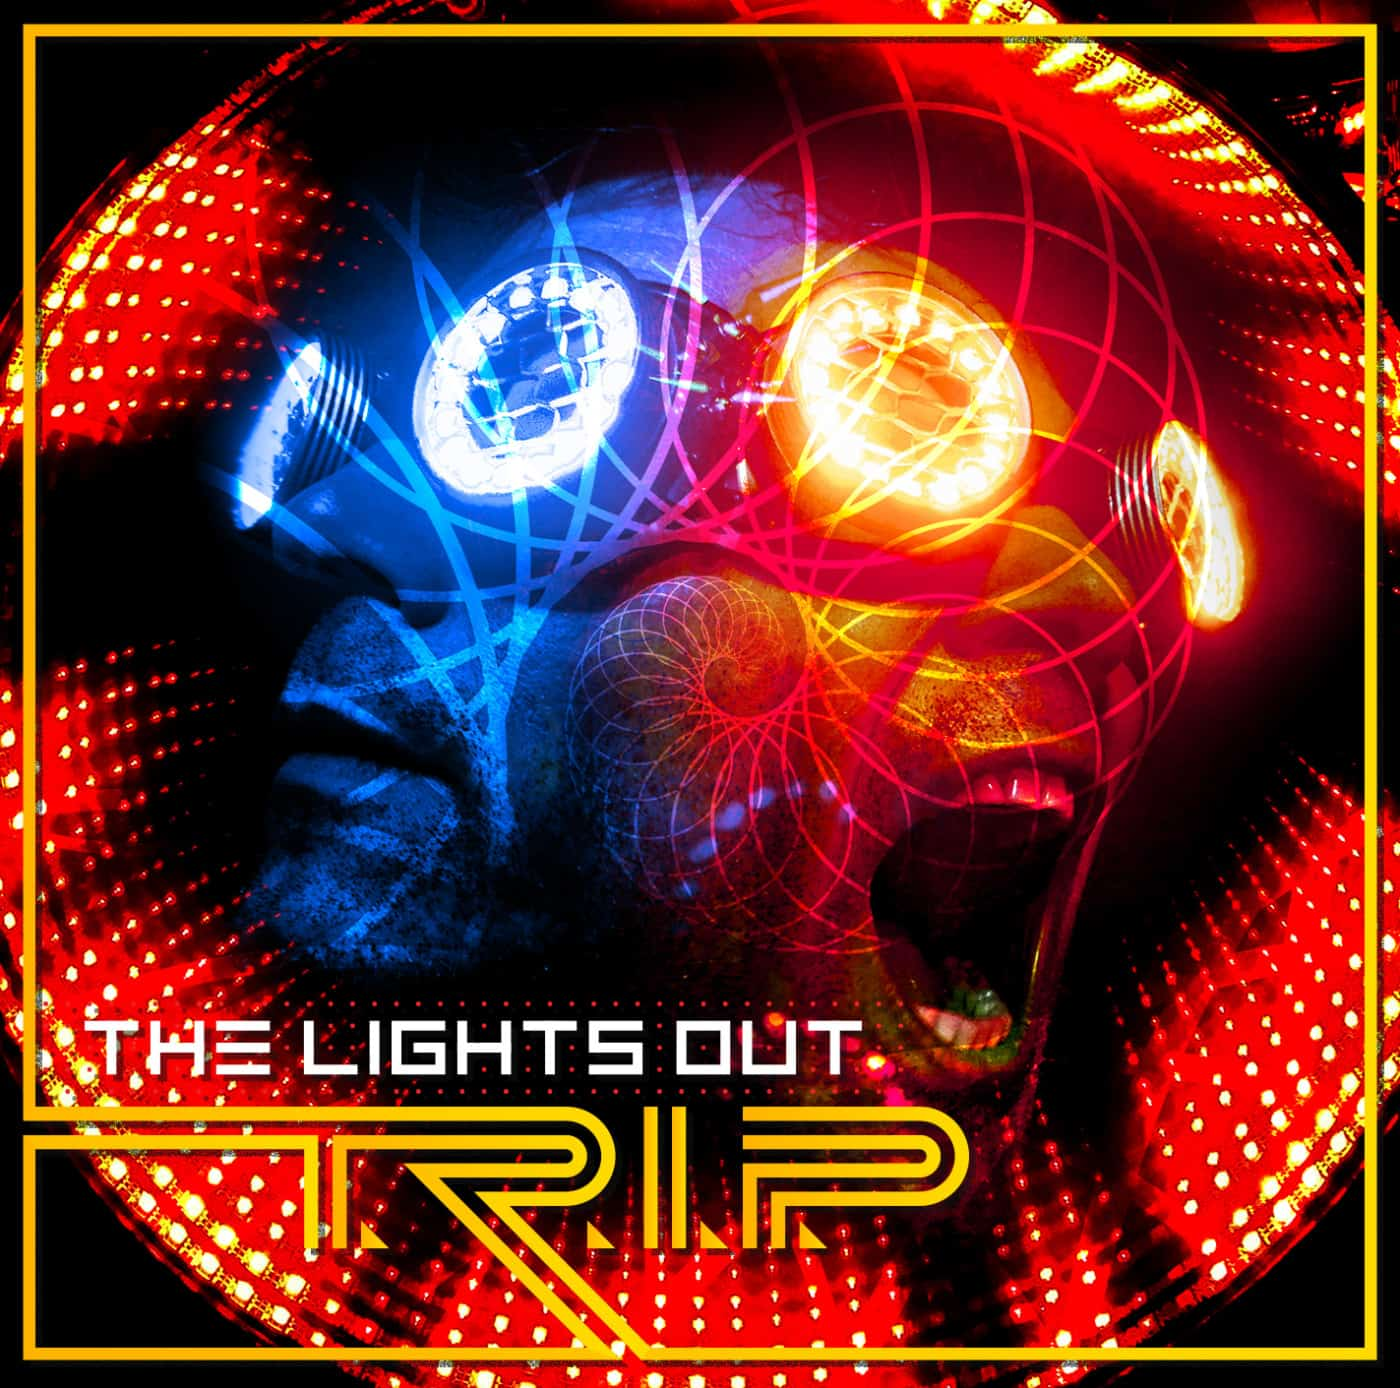 The Lights Out_T.R.I.P._2017 LP Cover_1423x1411